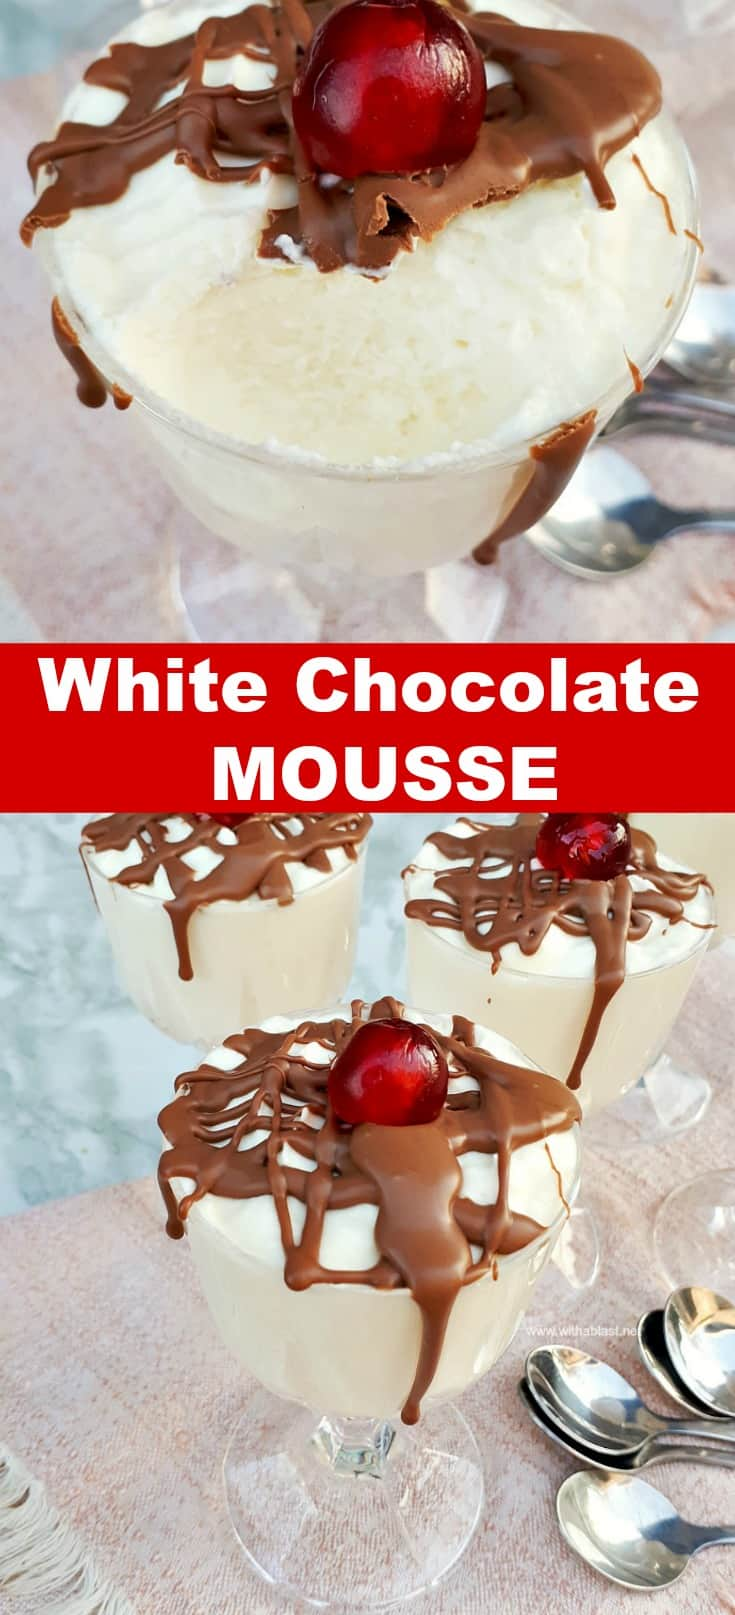 White Chocolate Mousse is so quick and easy to make [make ahead friendly recipe] #ChocolateMousse #Mousse #DecadentDessert